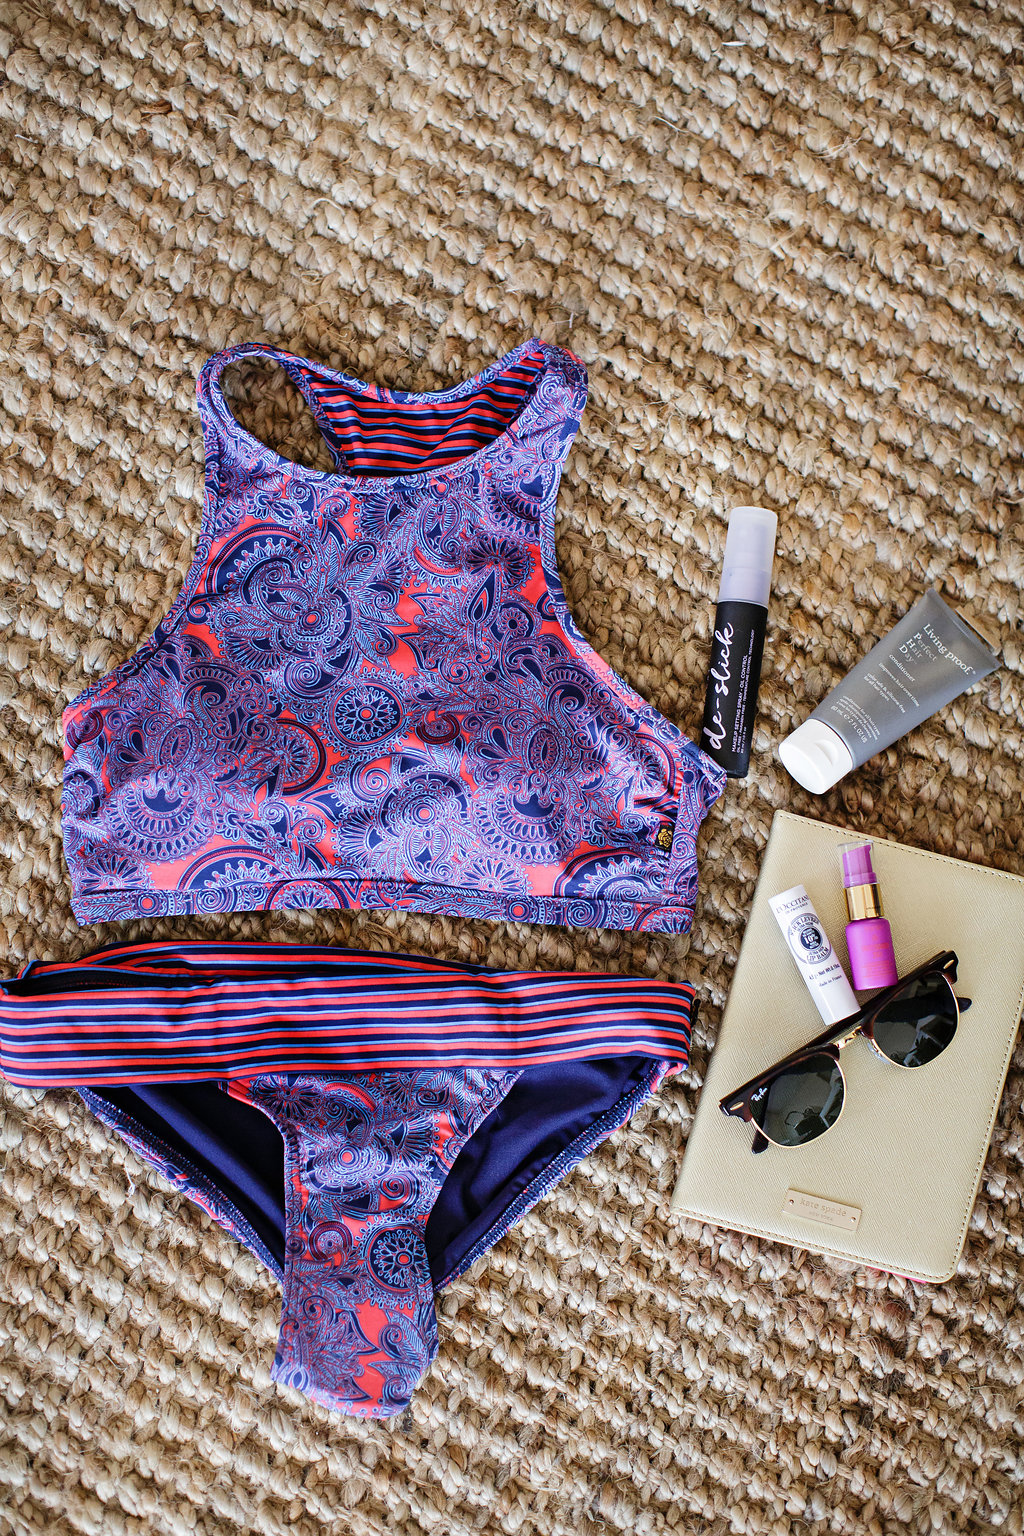 Spring-break-carry-on-essentials-rosecitystyleguide-devonshire-mall-packing-guide-march-break